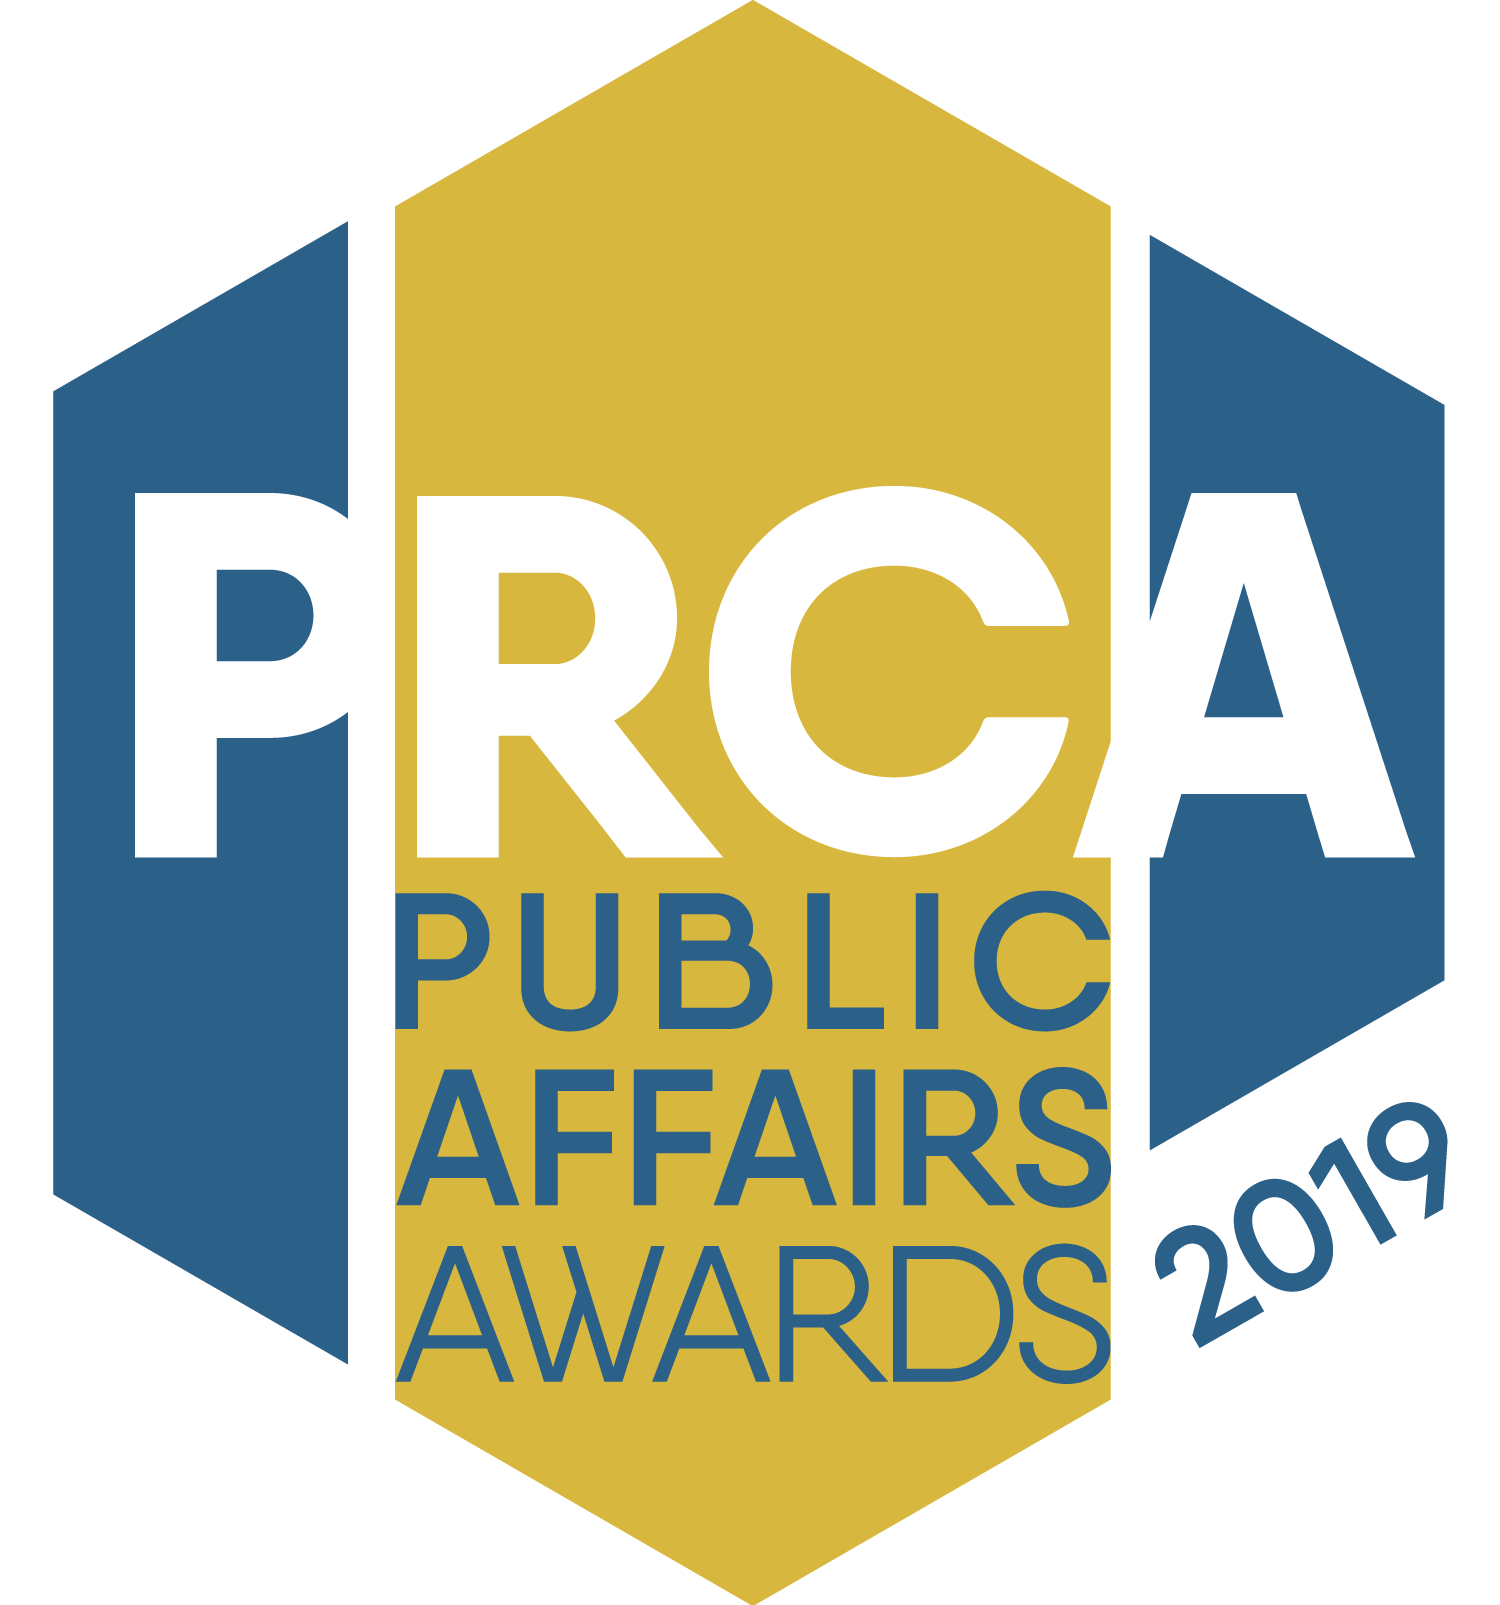 PRCA Public Affairs Awards 2019